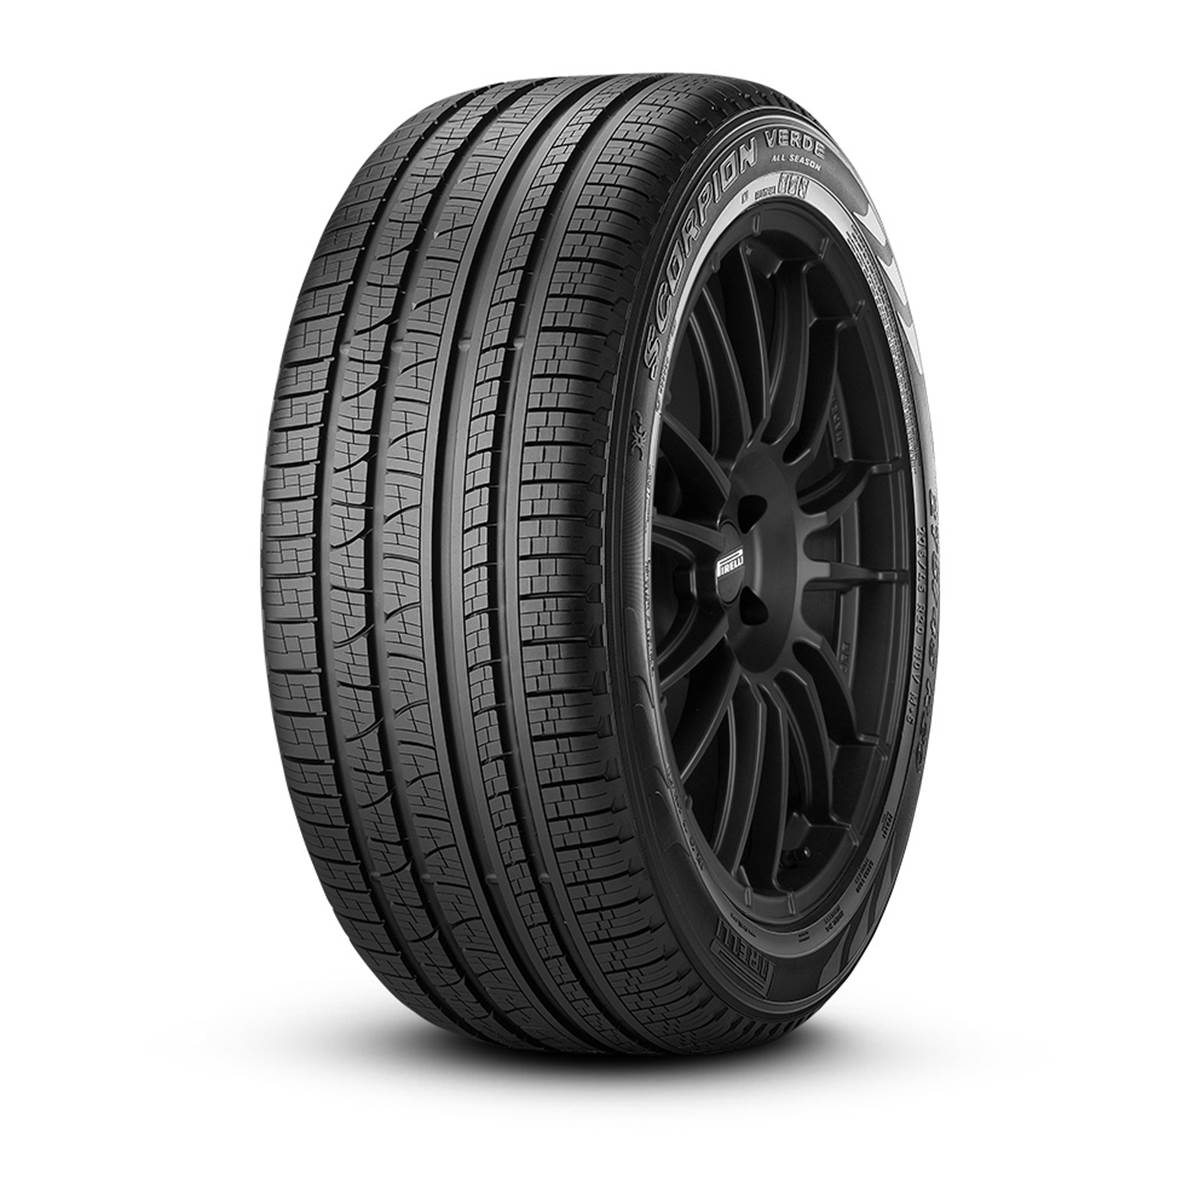 Pirelli Scorpion Verde All Season Xl